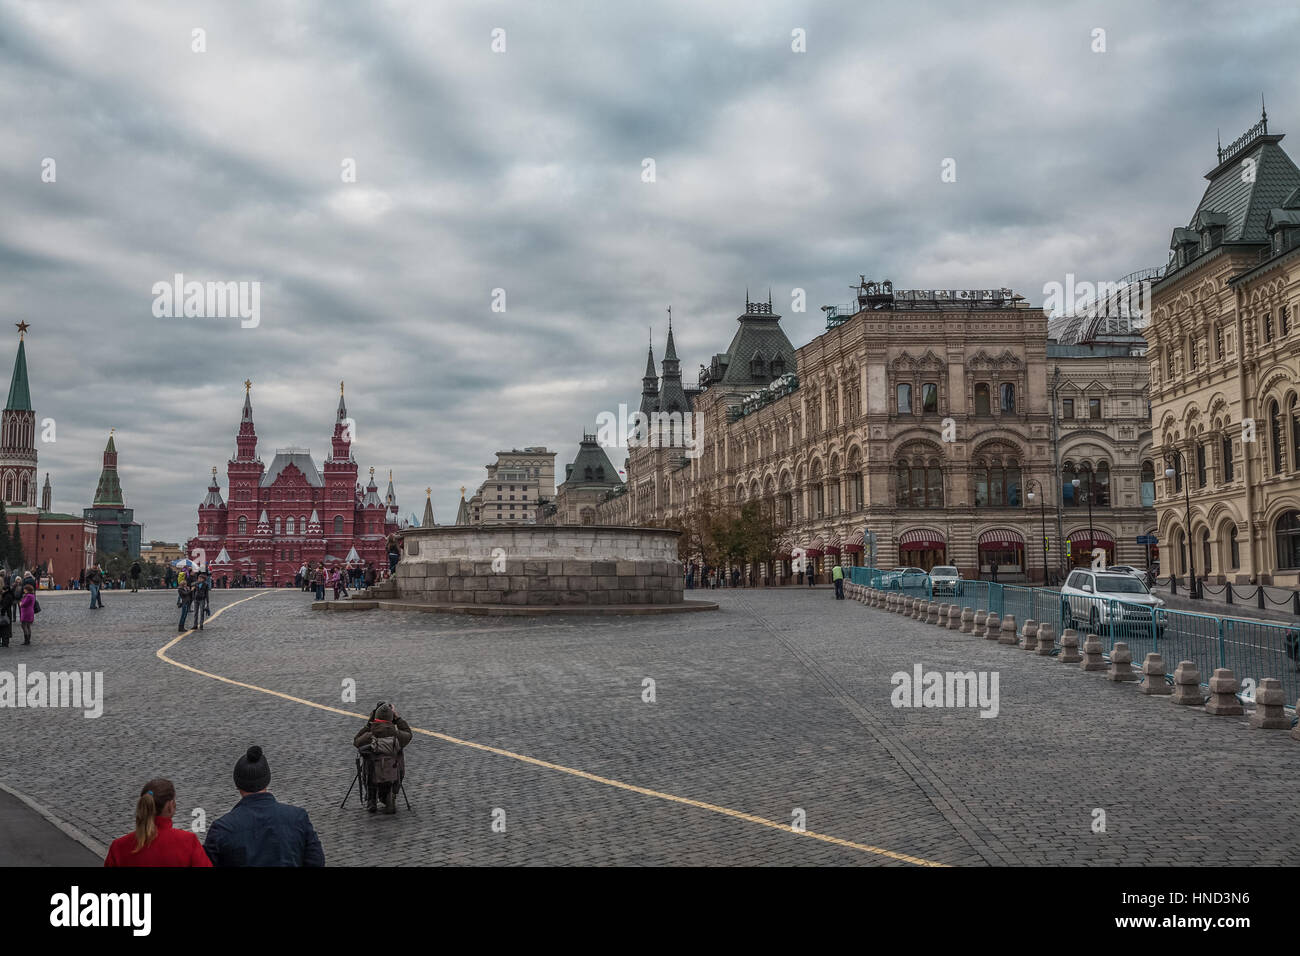 Lobnoye Mesto at Red Square - Stock Image